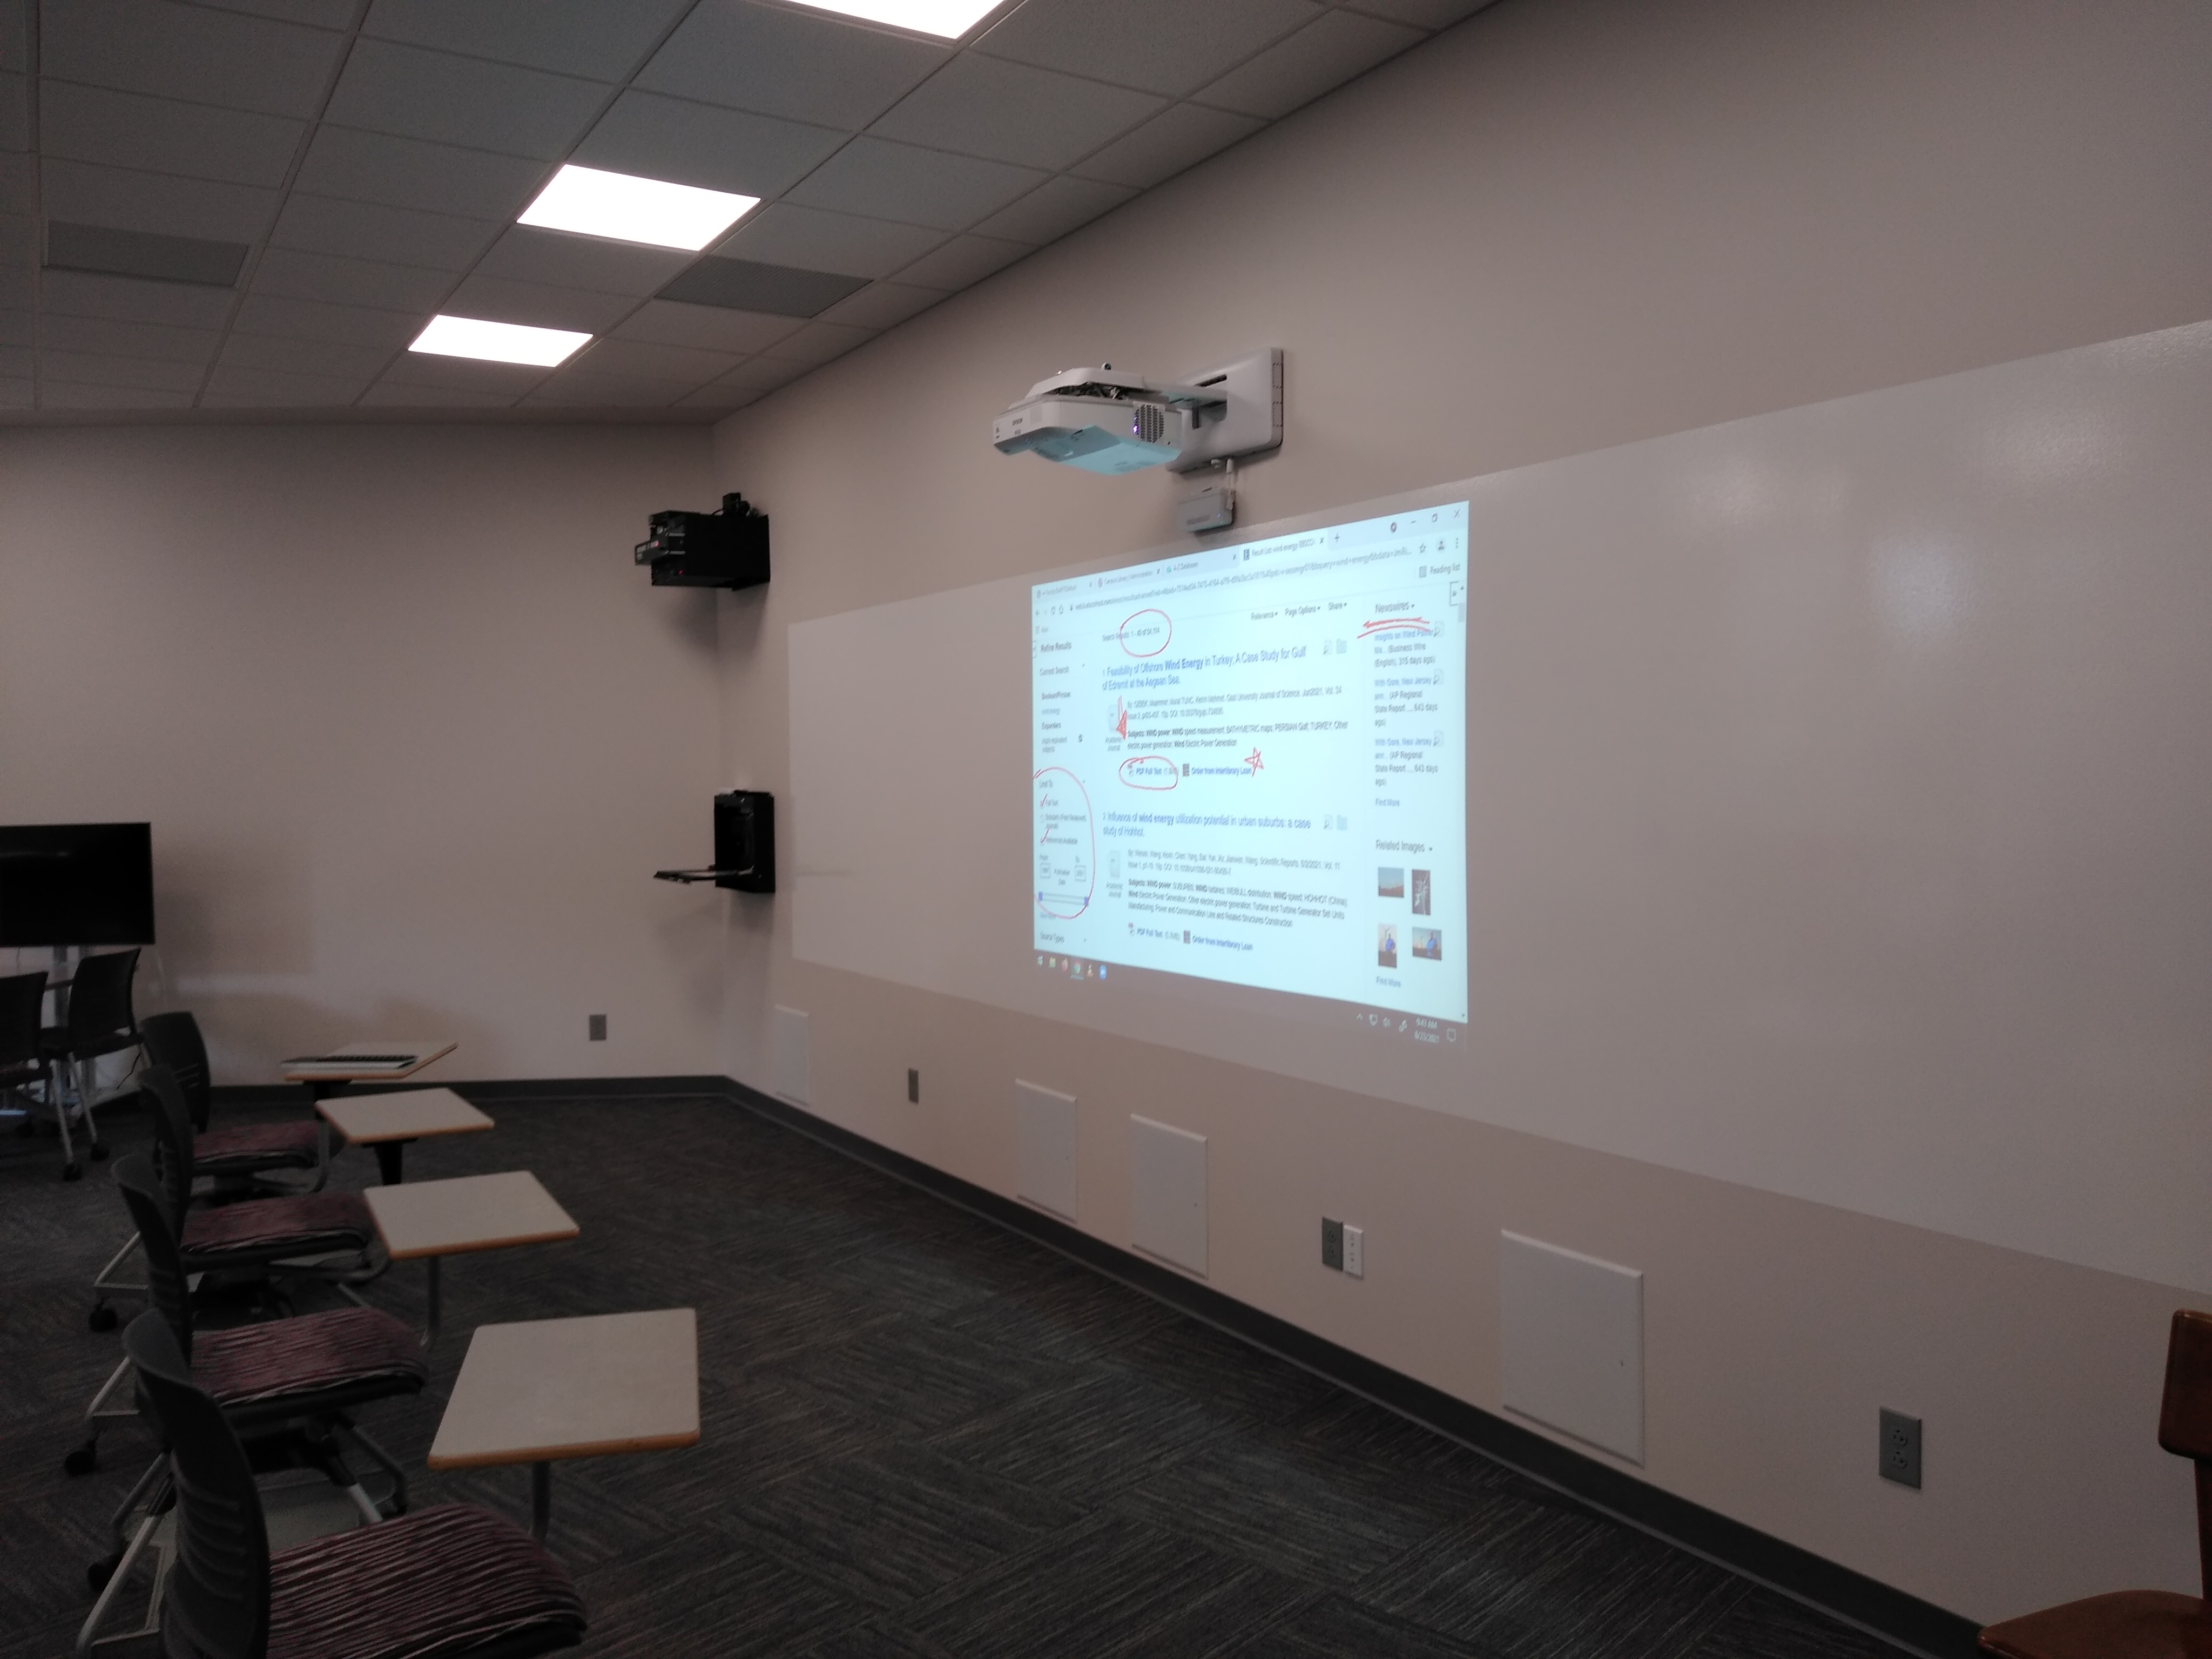 Whiteboard and projector